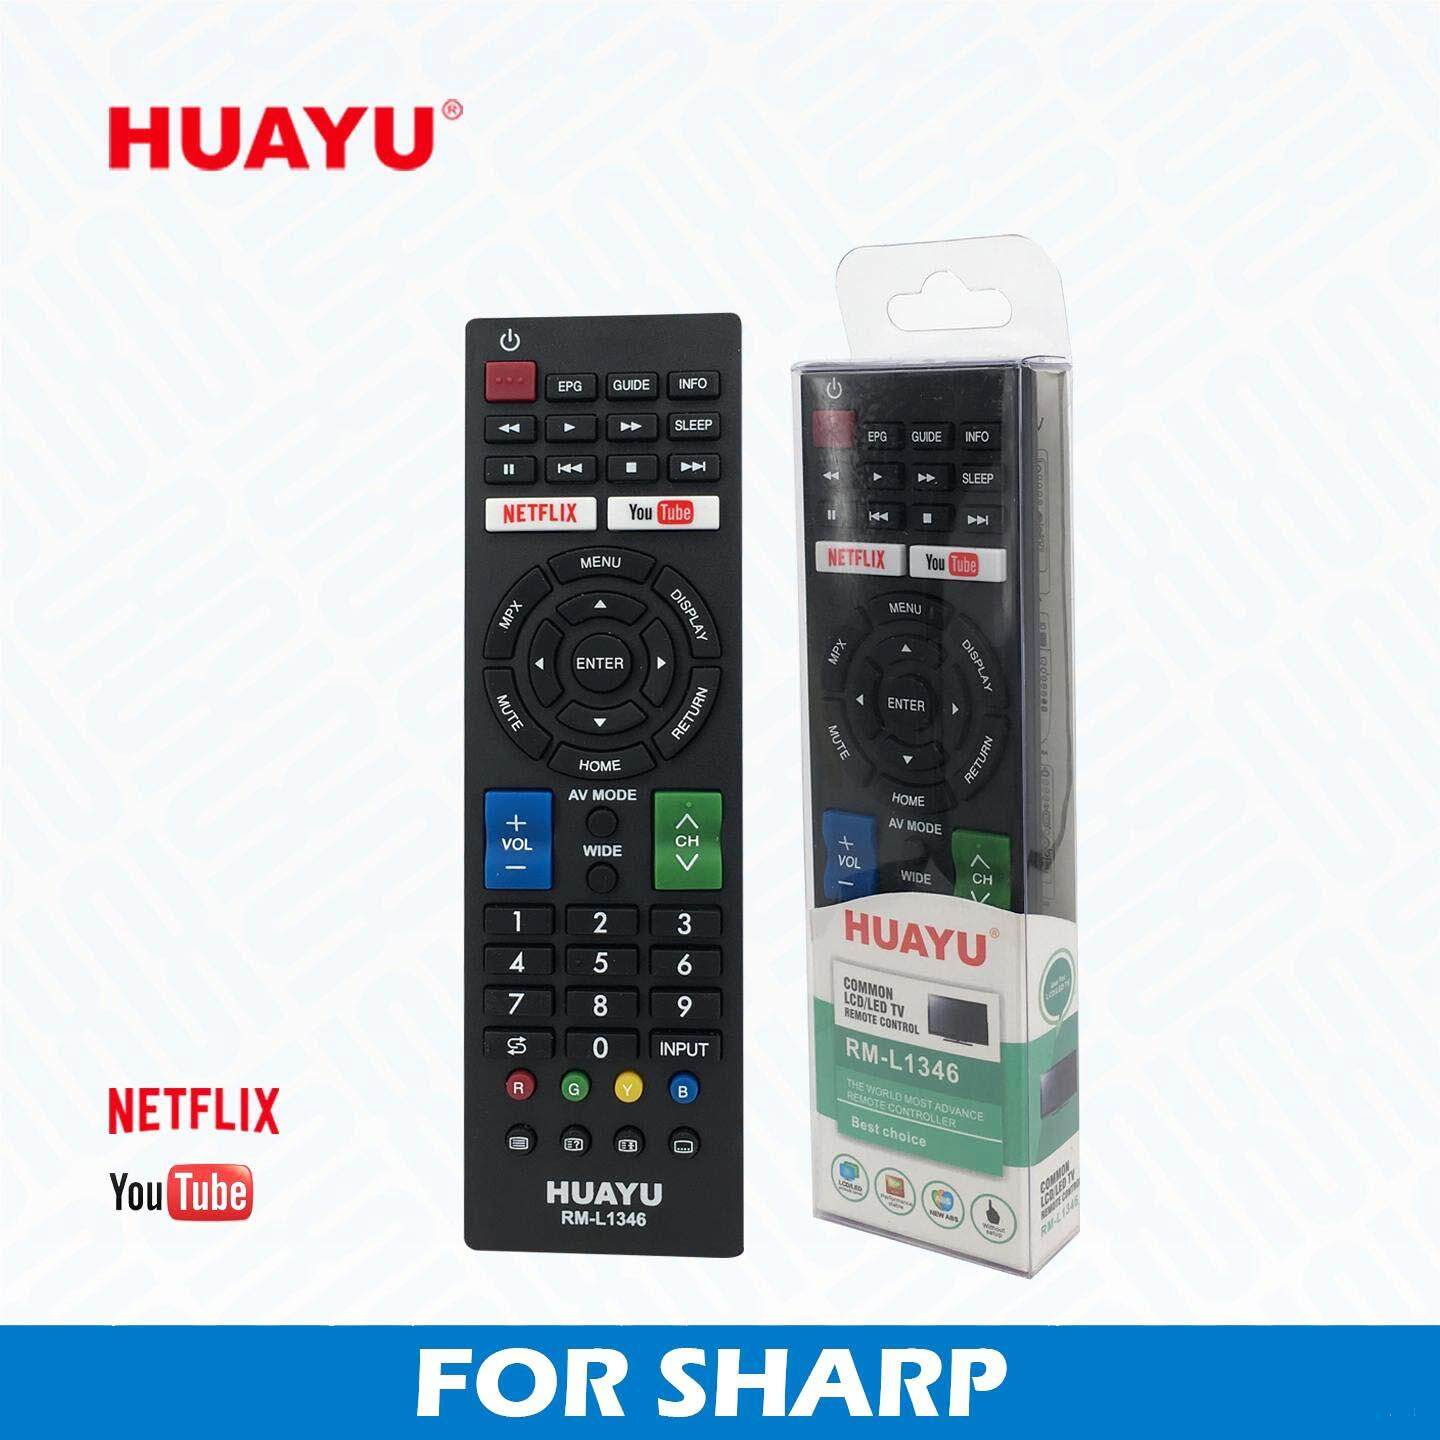 HUAYU Remote Control For SHARP SMART 3D NETFLIX TV LED/LCD RM-L1346 _3106036